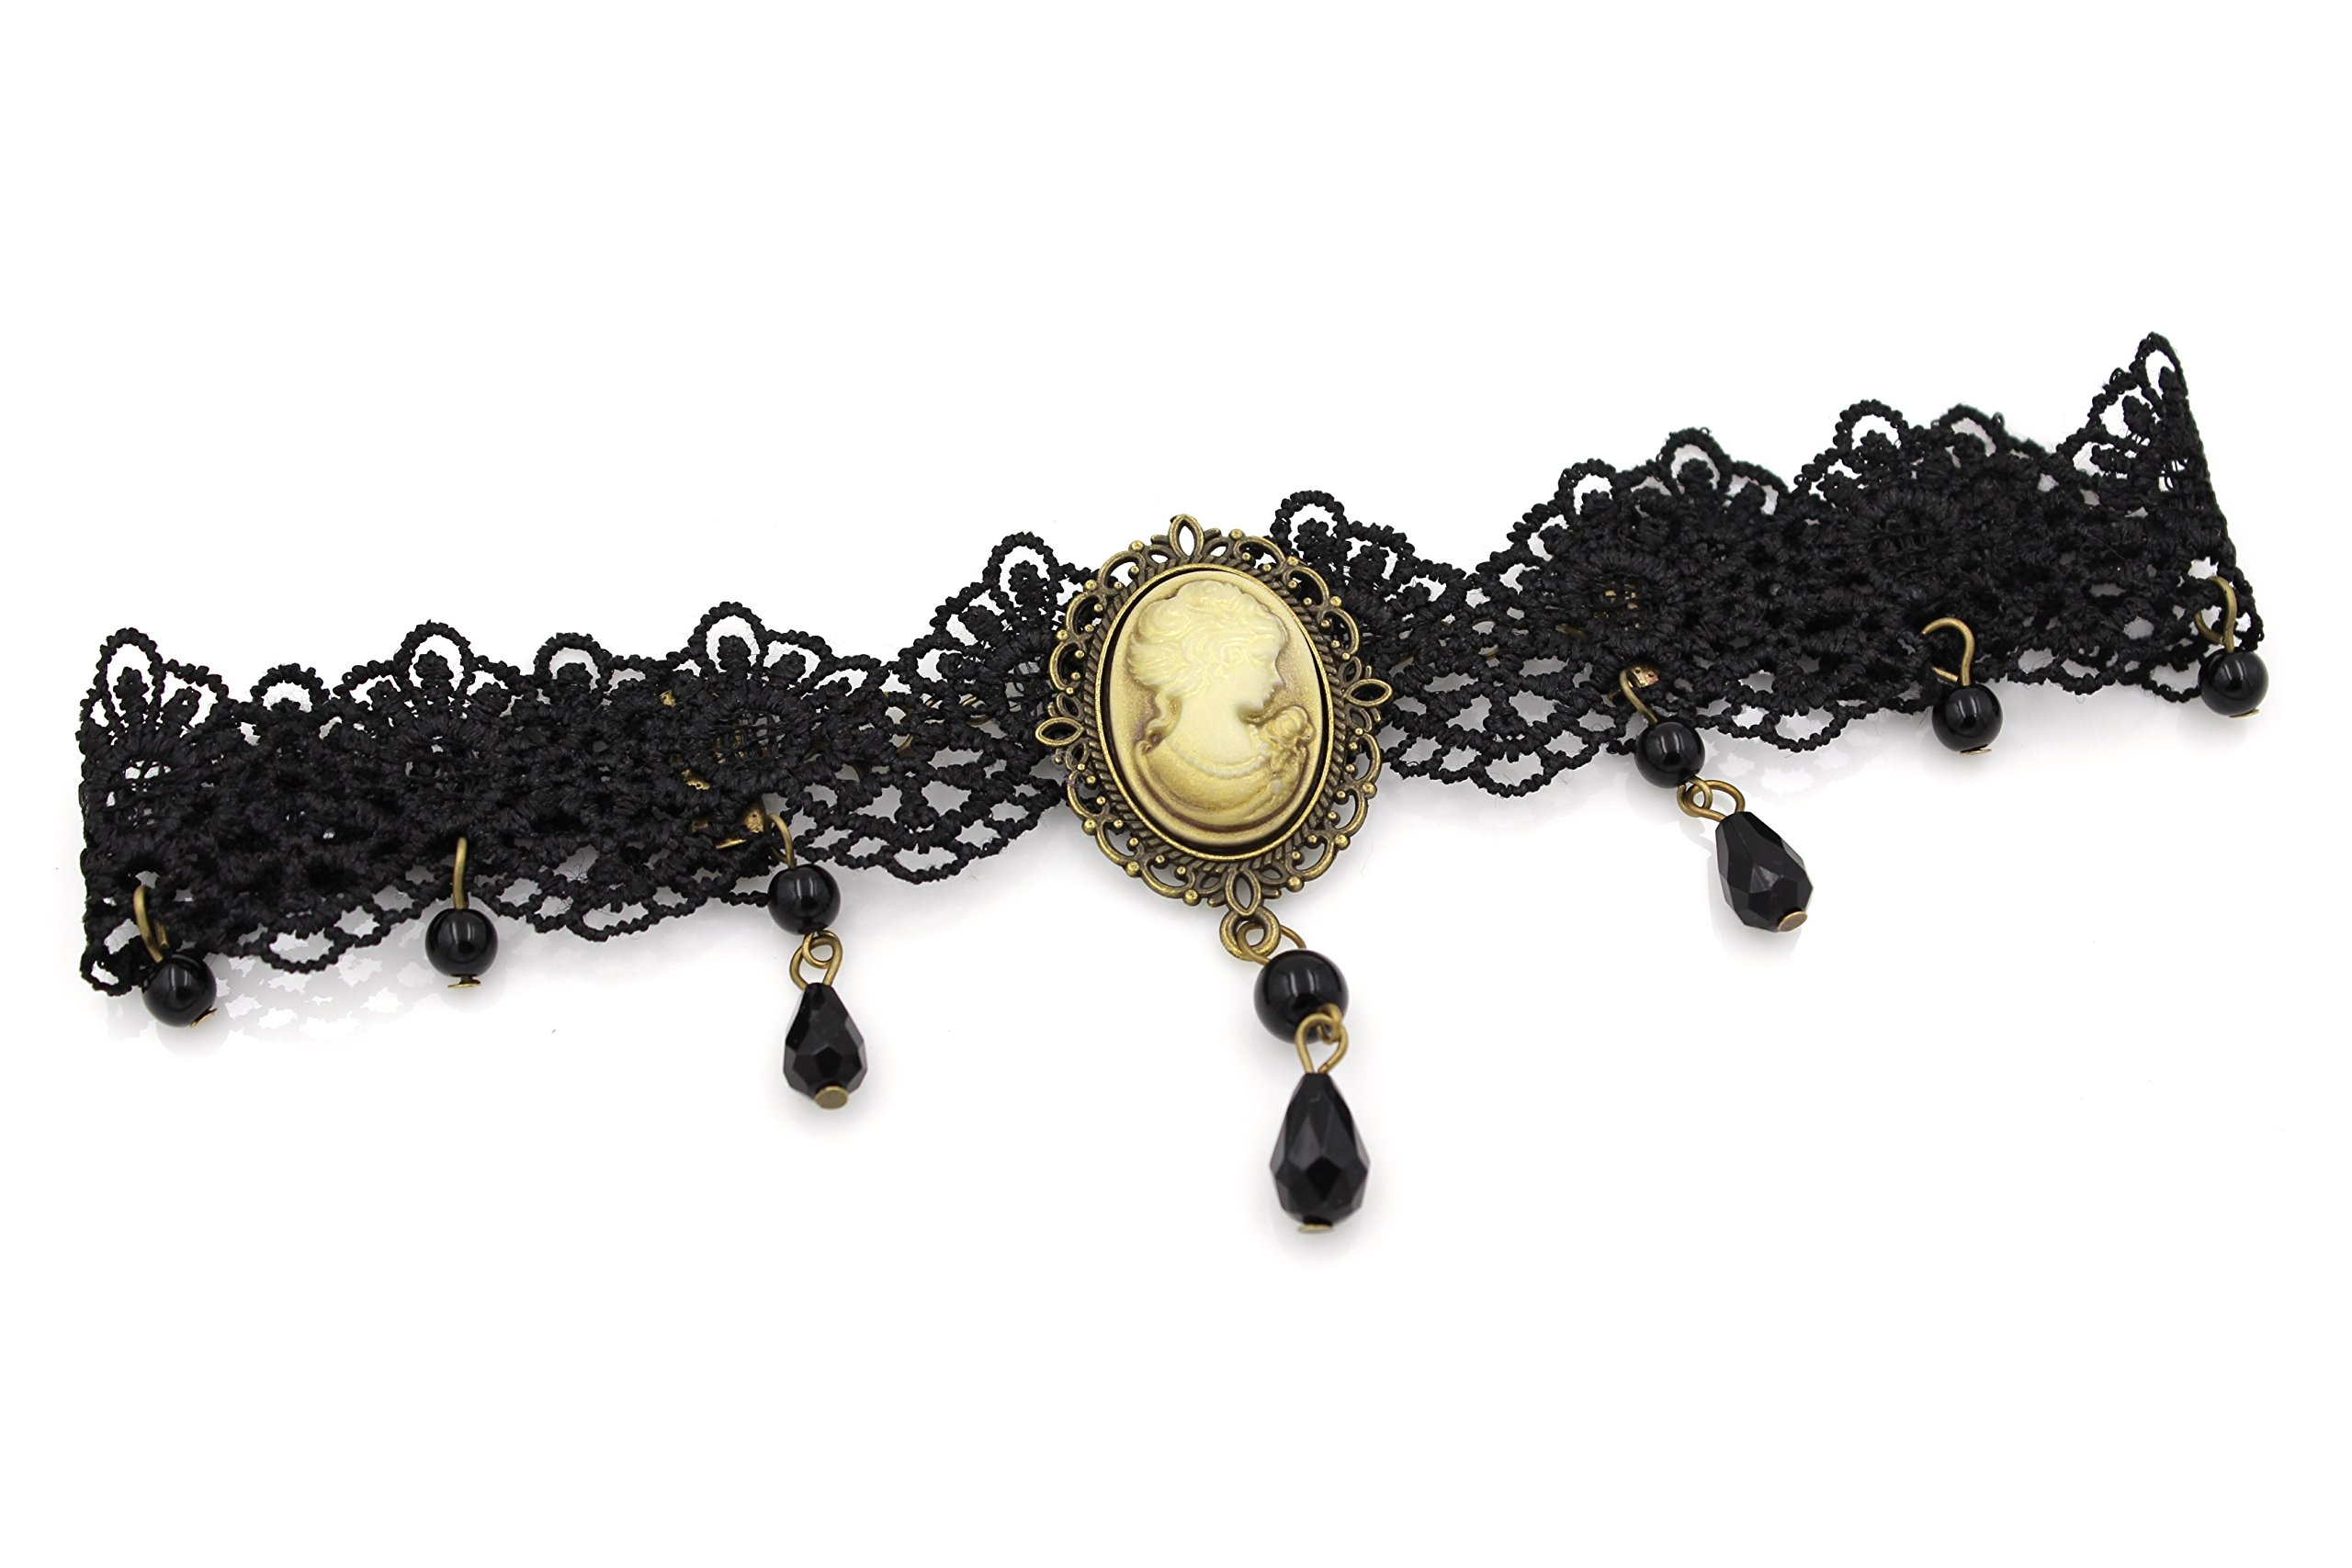 Glazed Black Cherry Steampunk Victorian Lady Cameo Choker Necklace - Gothic Goth - Bead Drop Vintage - Steam Punk - s30 4